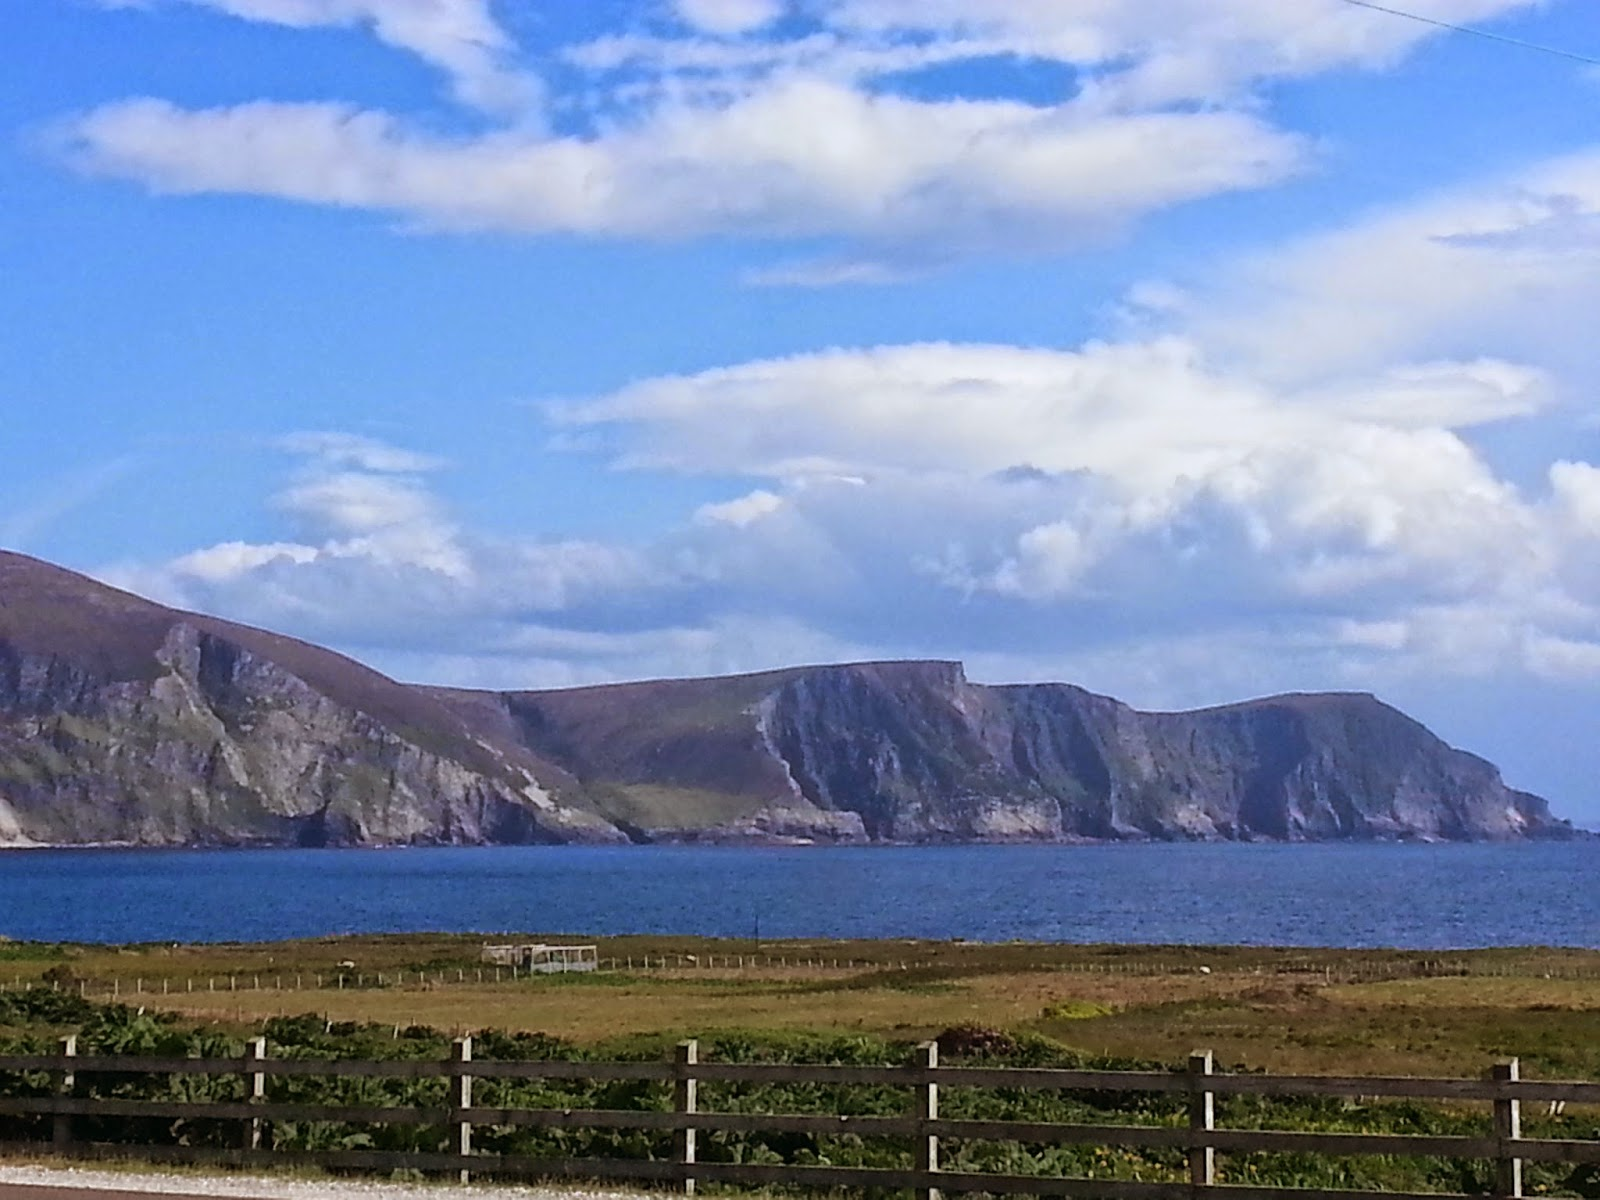 minaun cliffs achill island with beautiful blue sky and candy floss clouds